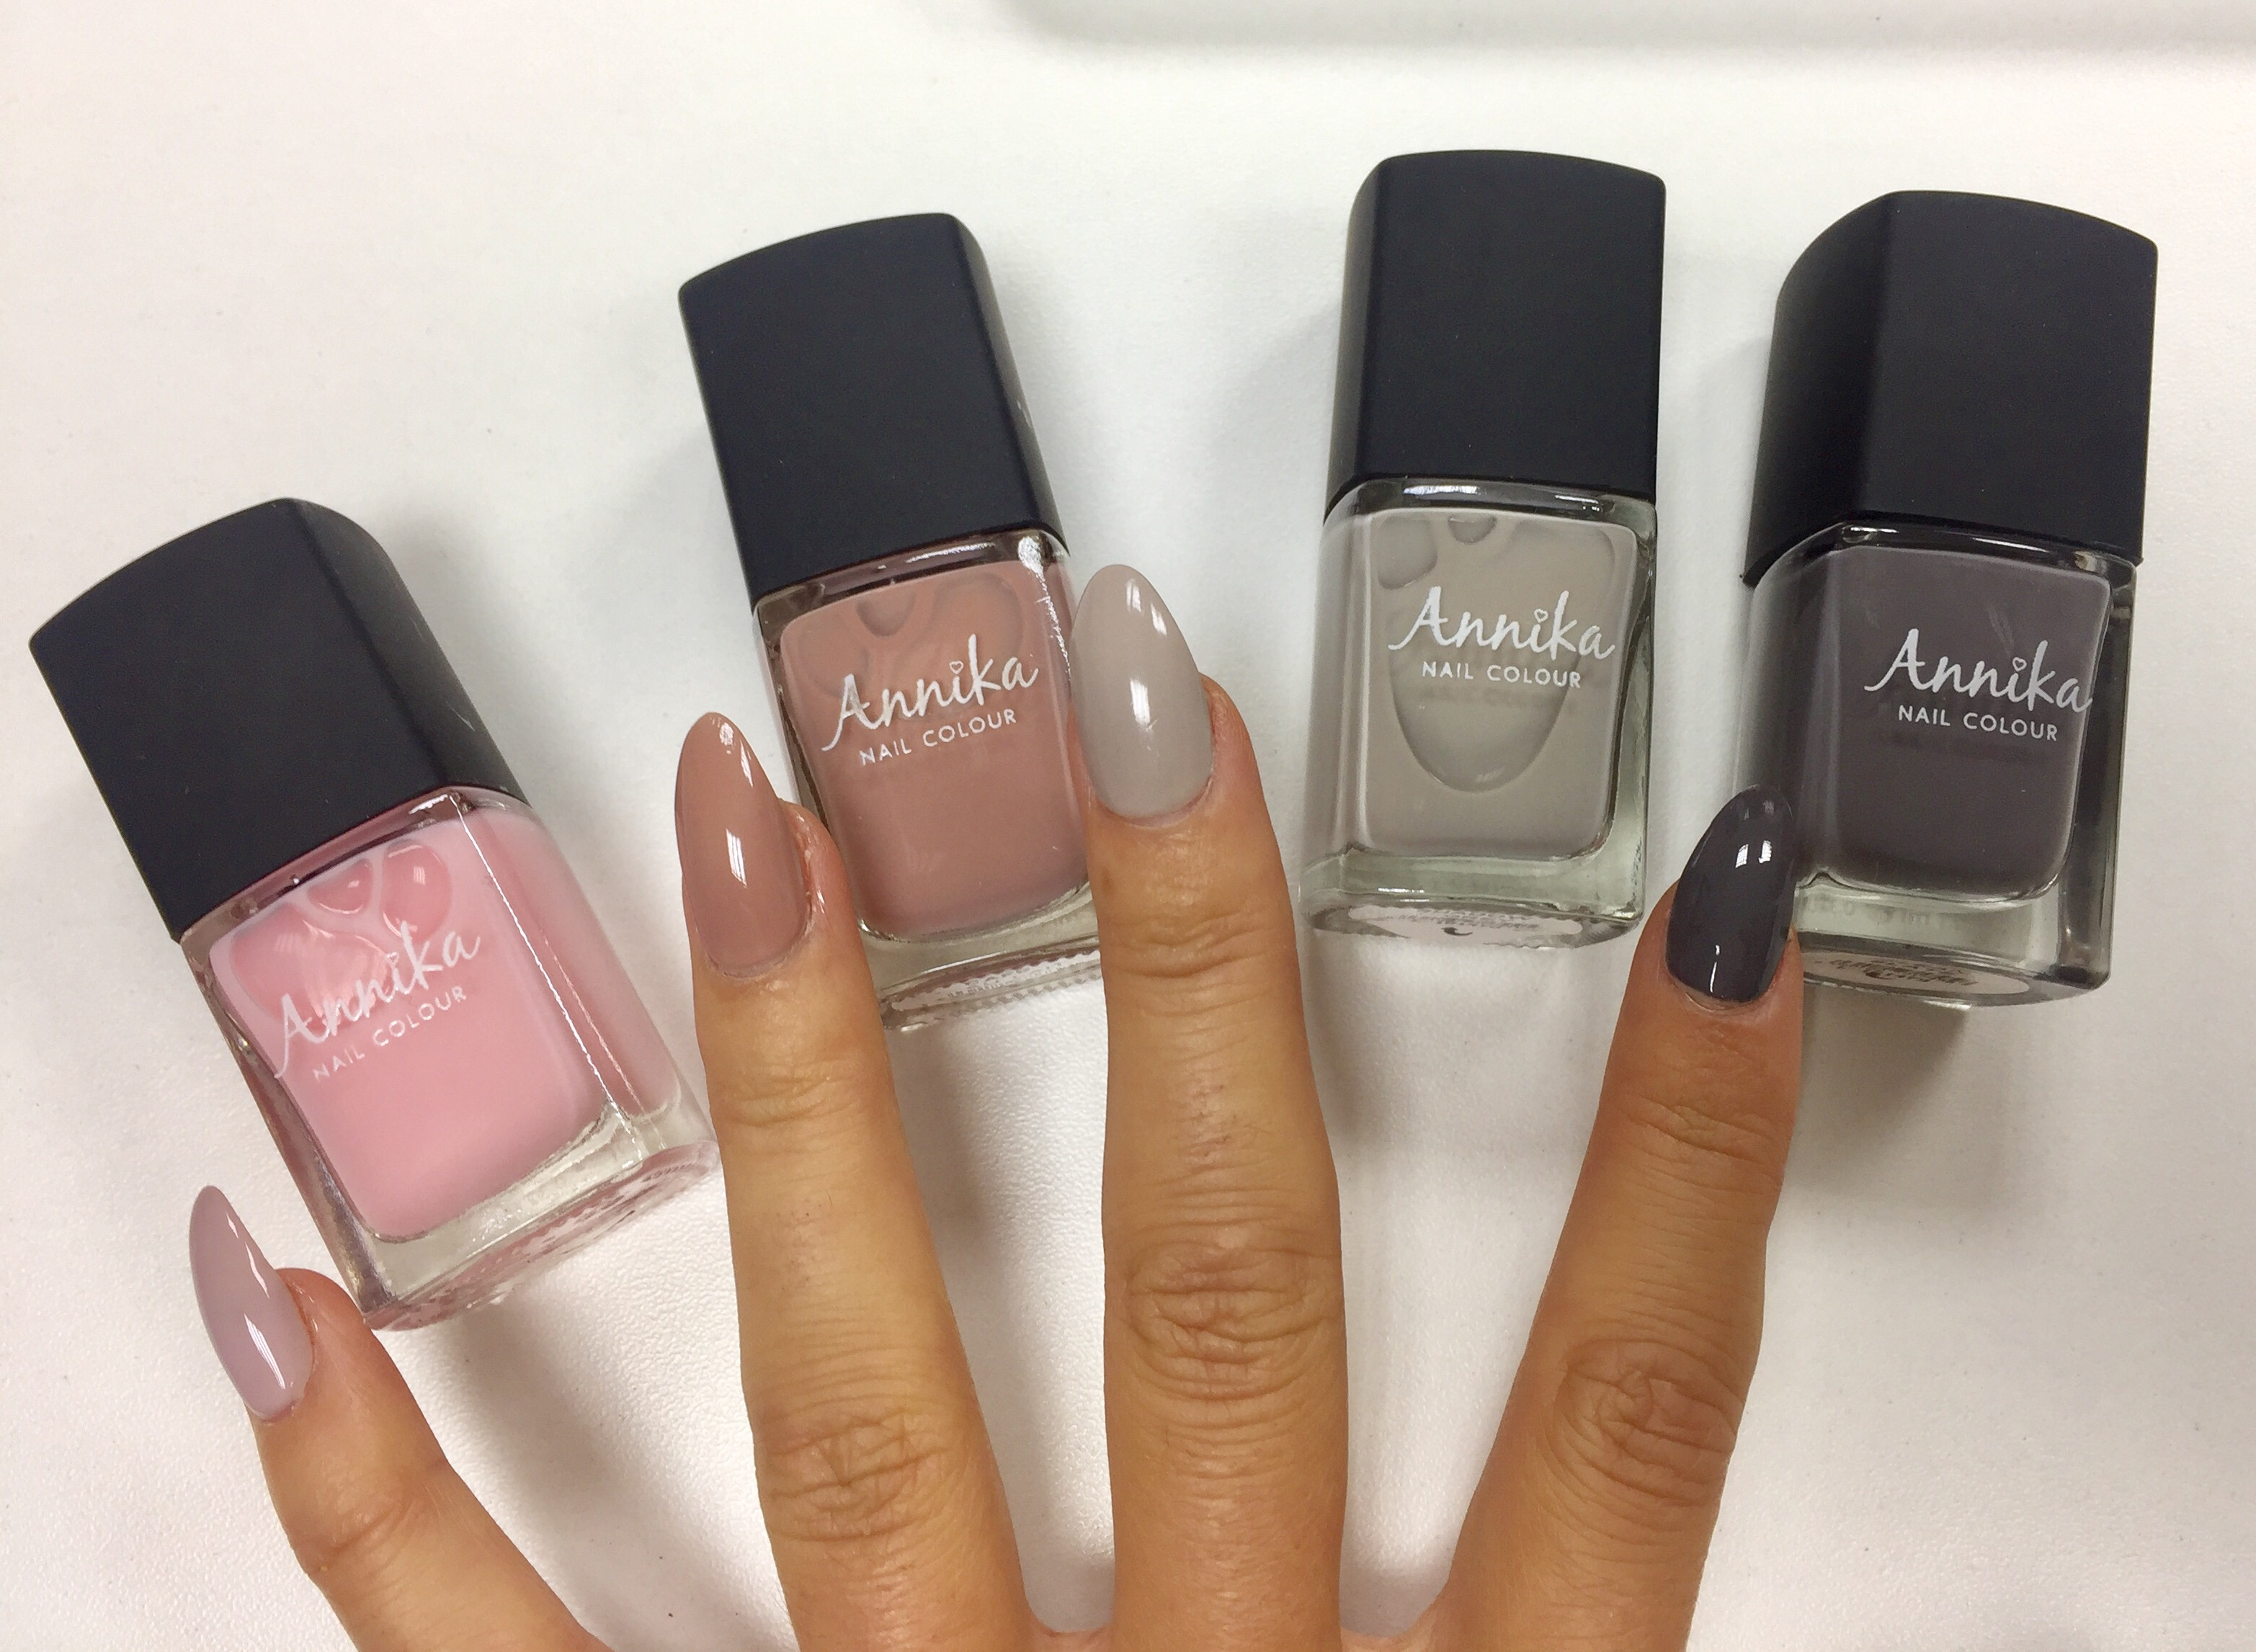 Annika_nail_colour_swatches